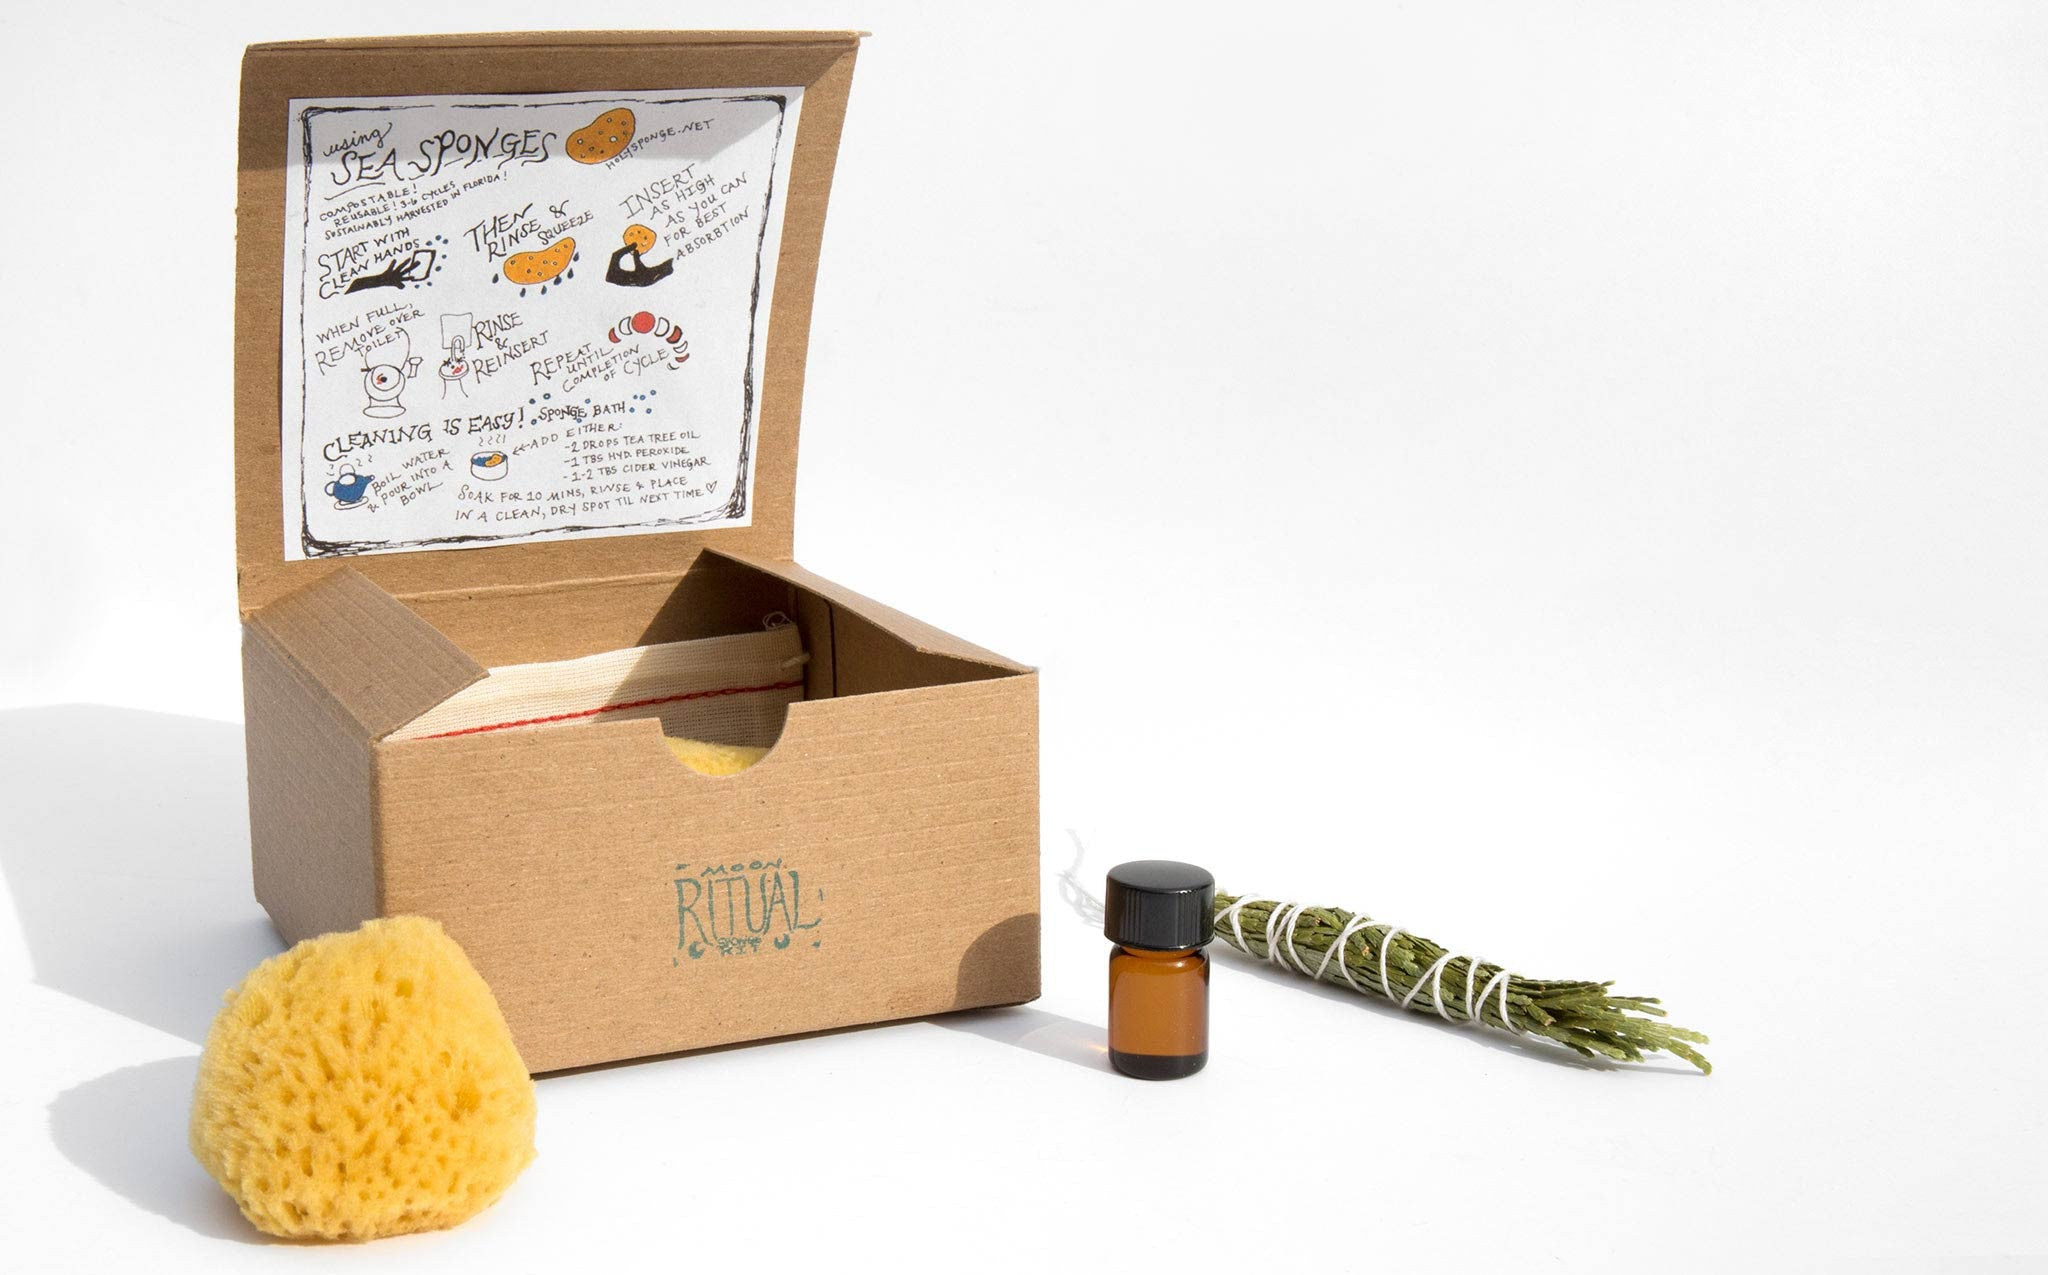 Holy Sponge Ritual Moon Kit